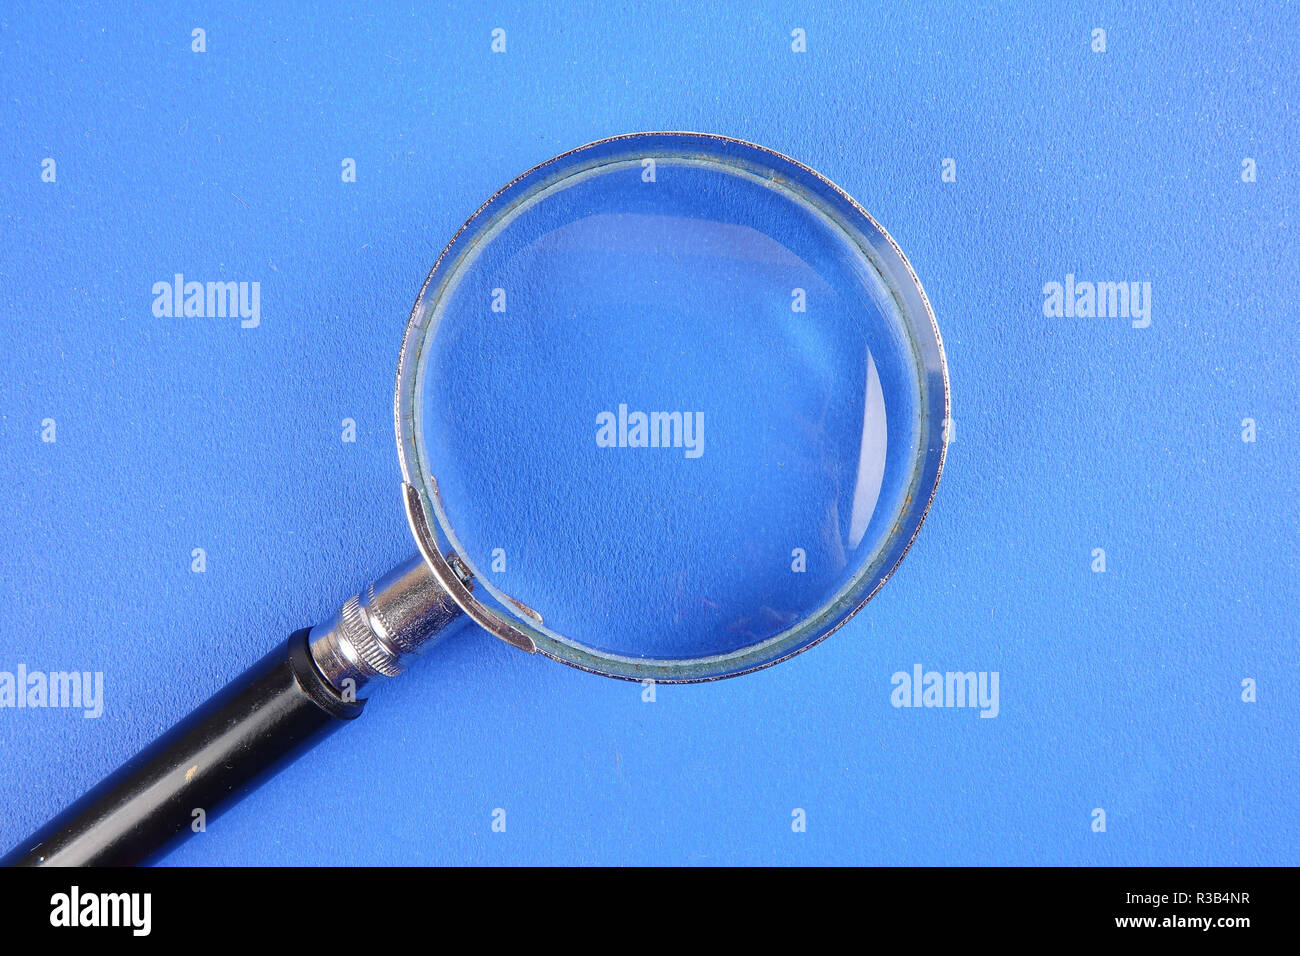 Hand holding magnify glass over a blue background - Stock Image